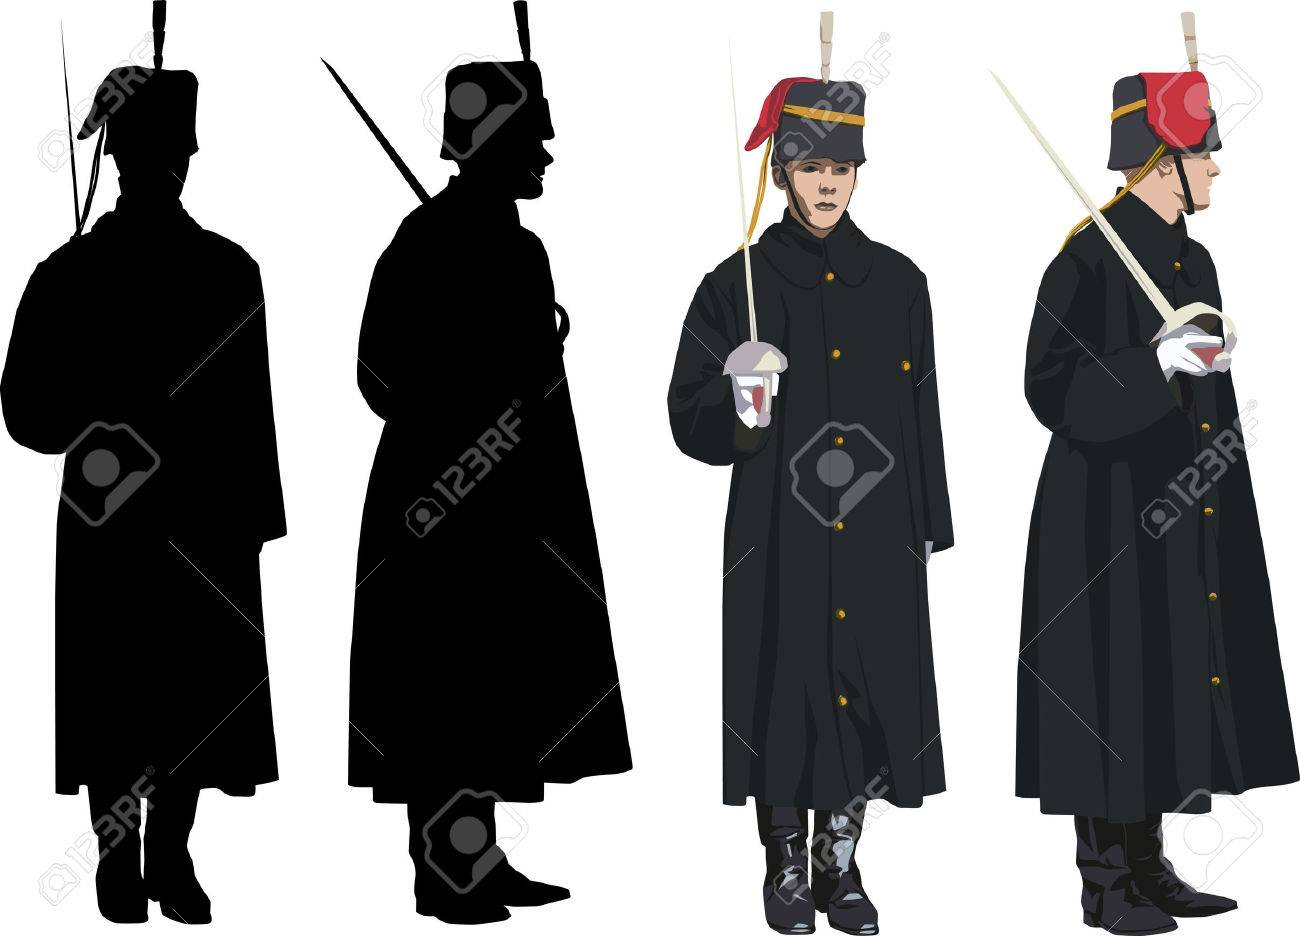 Royal Guard with sword at Buckingham palace in London. Vector illustration and silhouette Stock Vector - 2995225